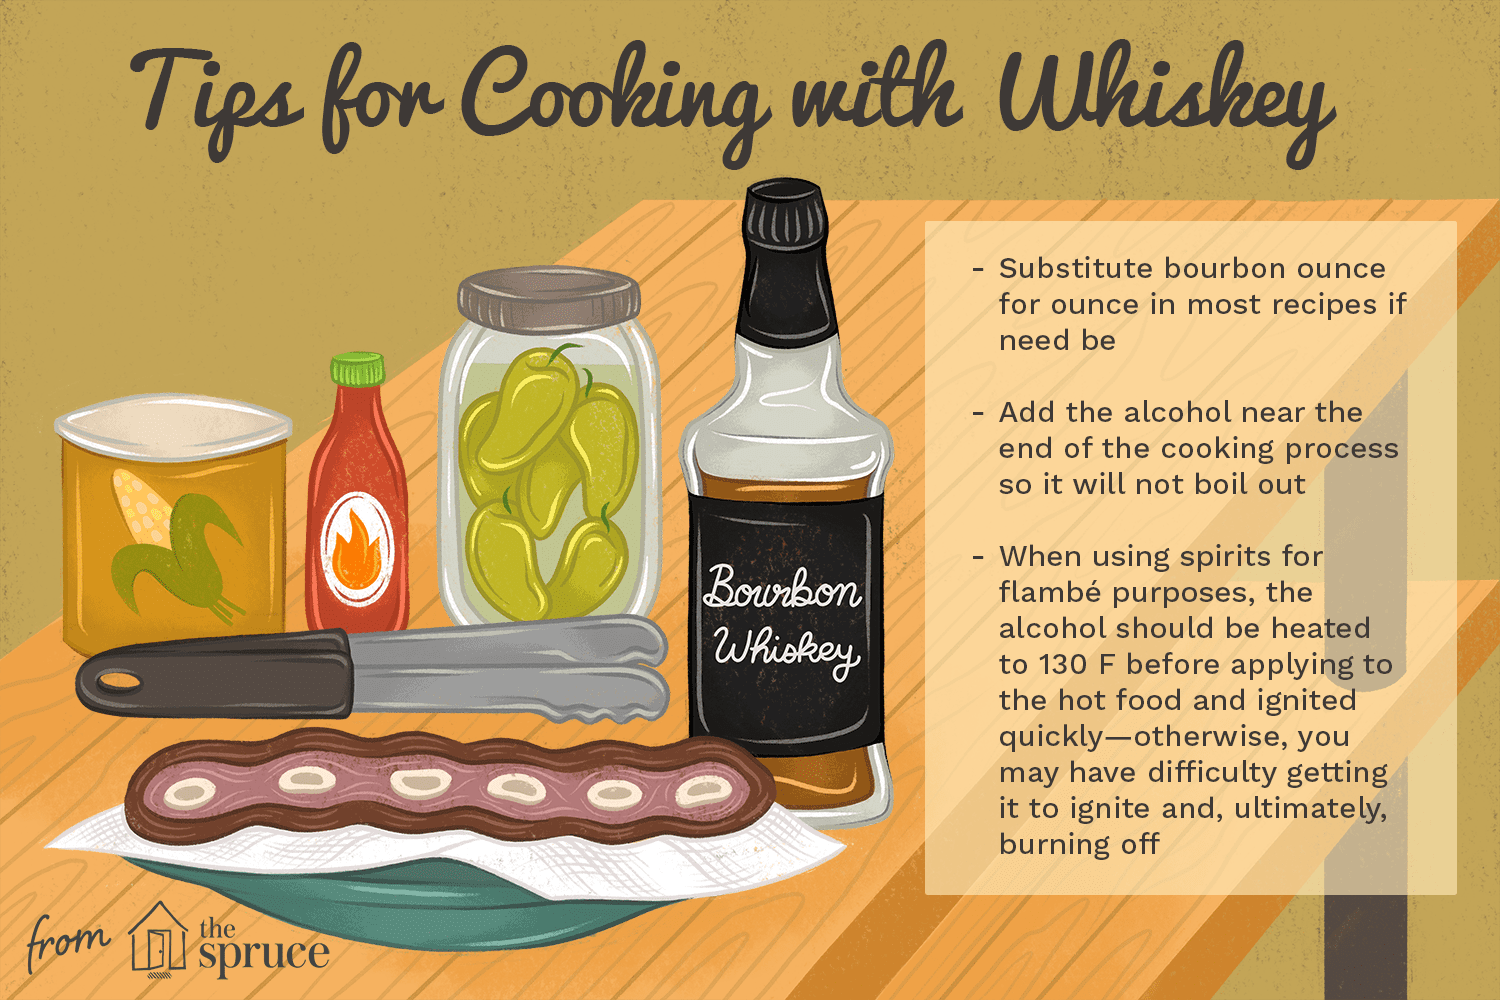 tips for cooking with whiskey